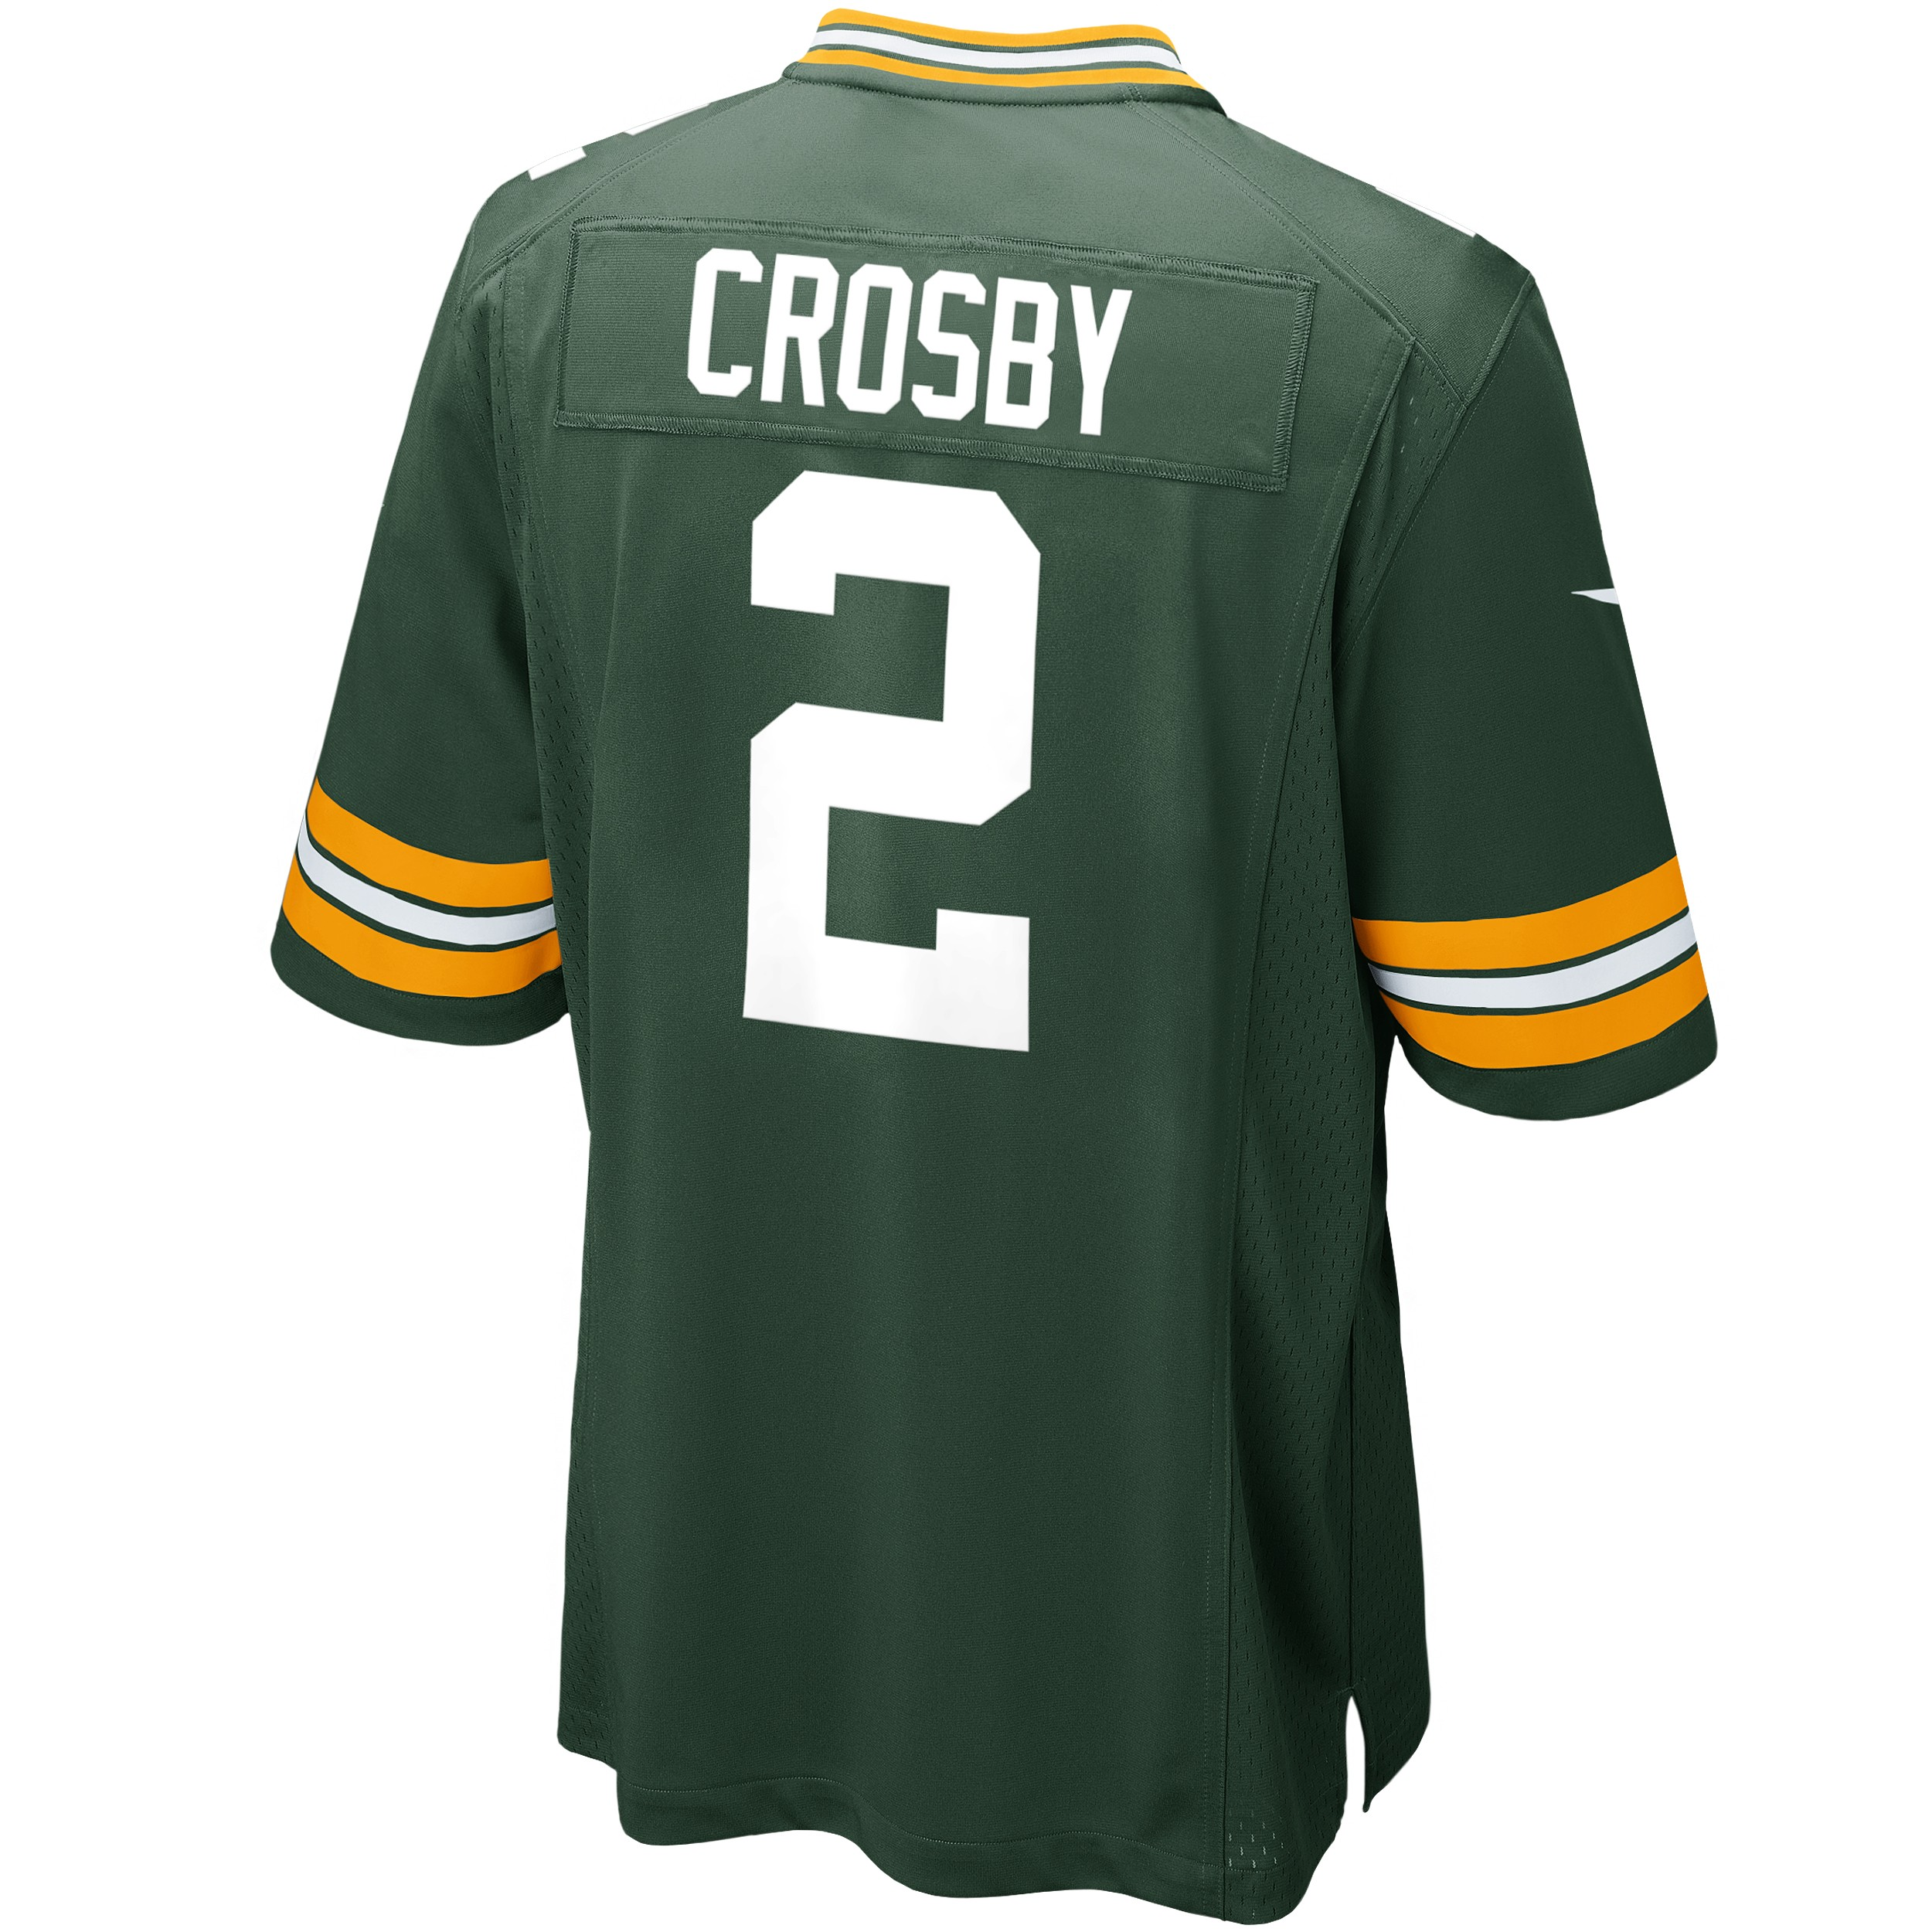 c92ad3444 ... Limited Mason Crosby Green Bay Packers Mens Jersey - 2 Rush Player Name  Number arriving f8aed  Jerseys. 2. Mason. Crosby best 633d0 3094f ...